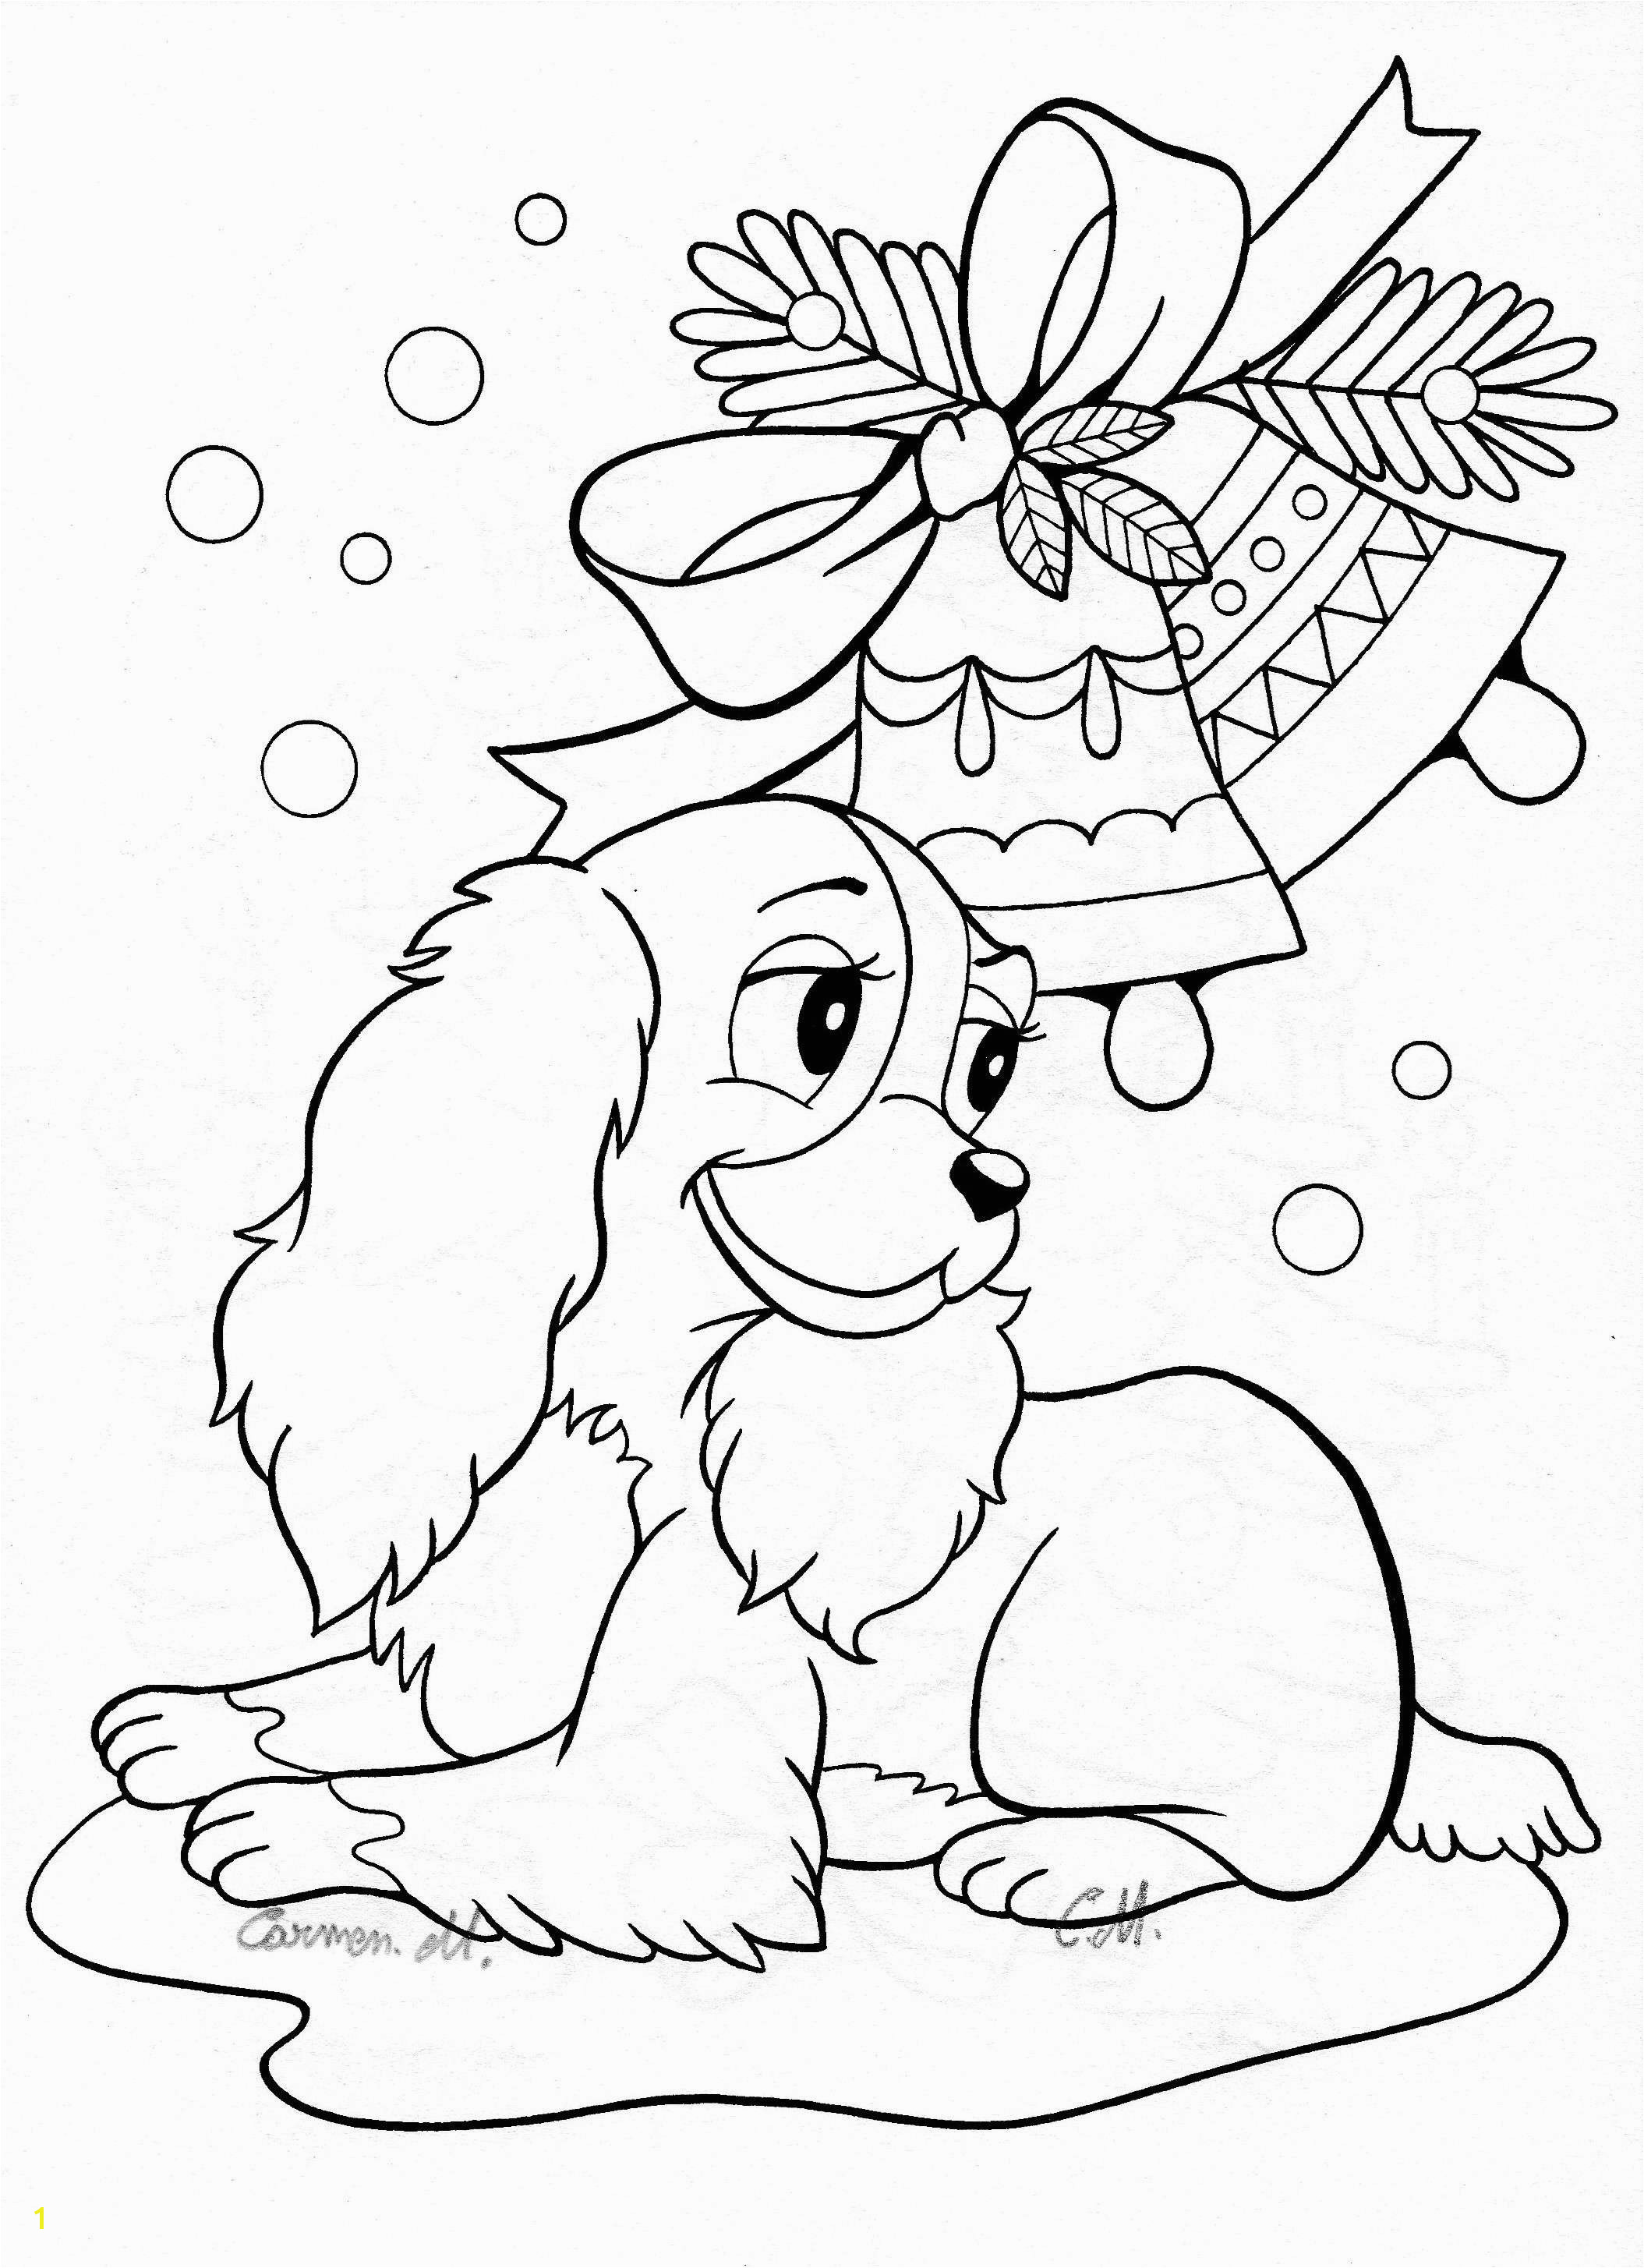 Free Animal Coloring Pages for Kids Free Biblical Christmas Coloring Pages Best Baby Jesus Coloring